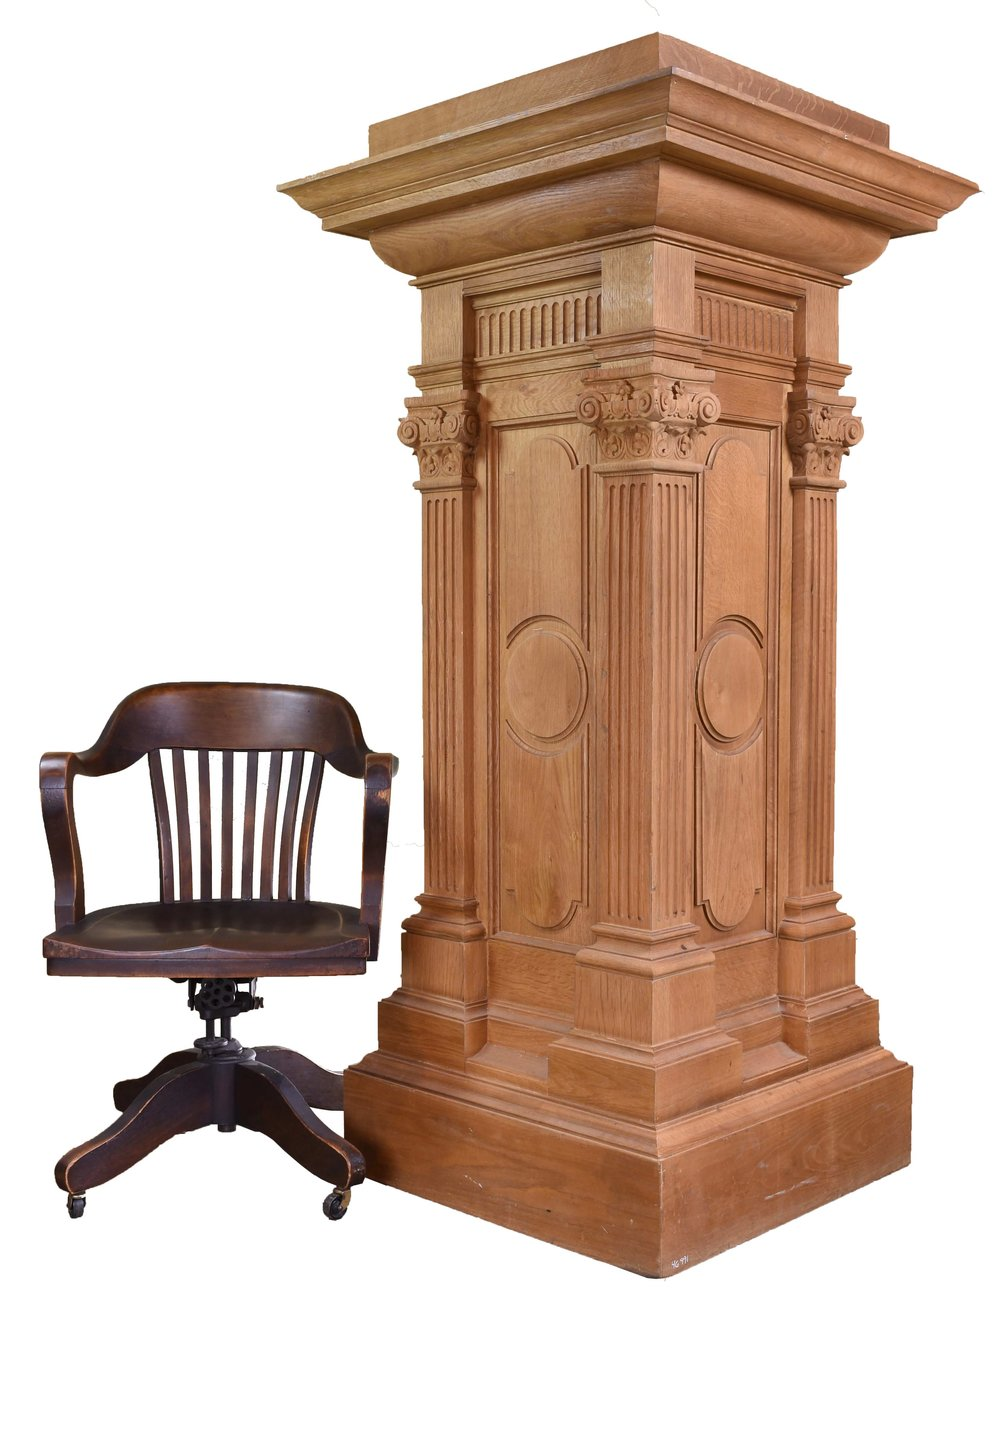 46991 quartersawn pedestal scale.jpg